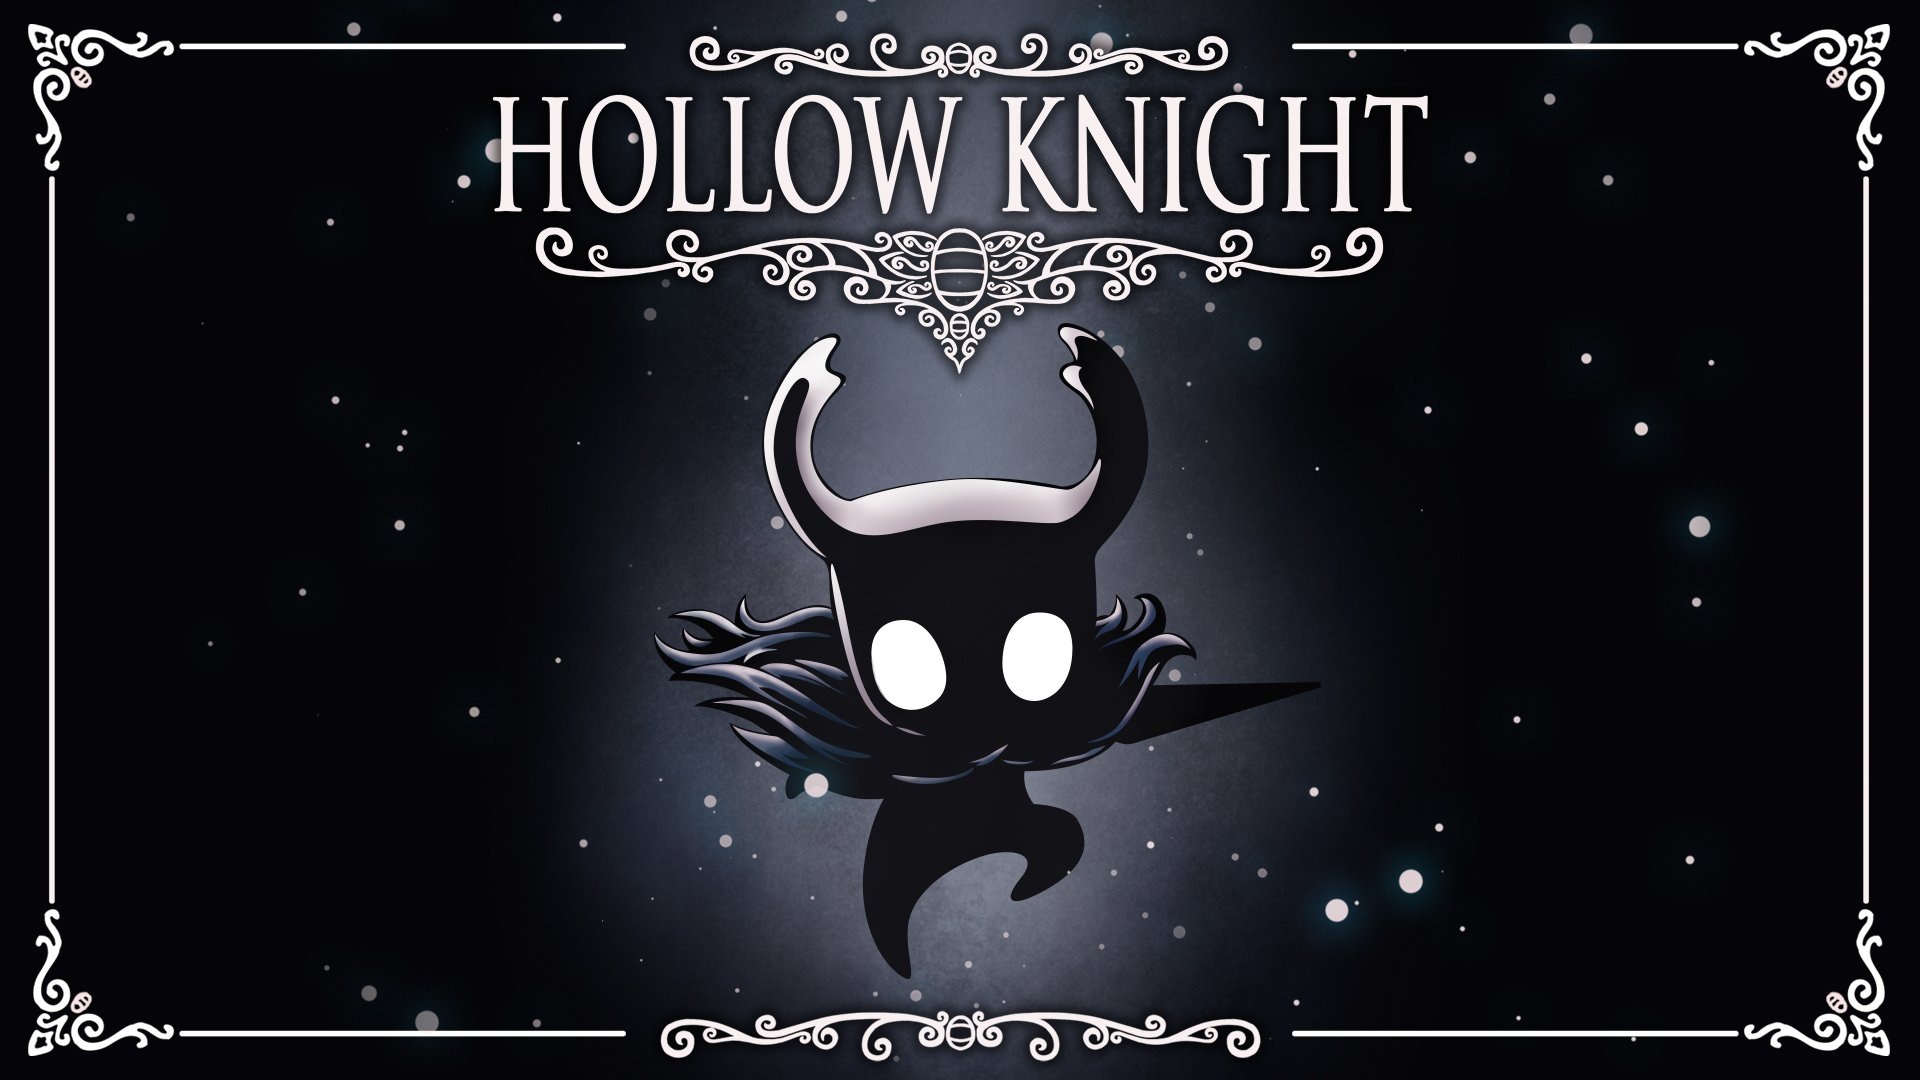 Hollow Knight Hd Wallpapers 33 Images Dodowallpaper